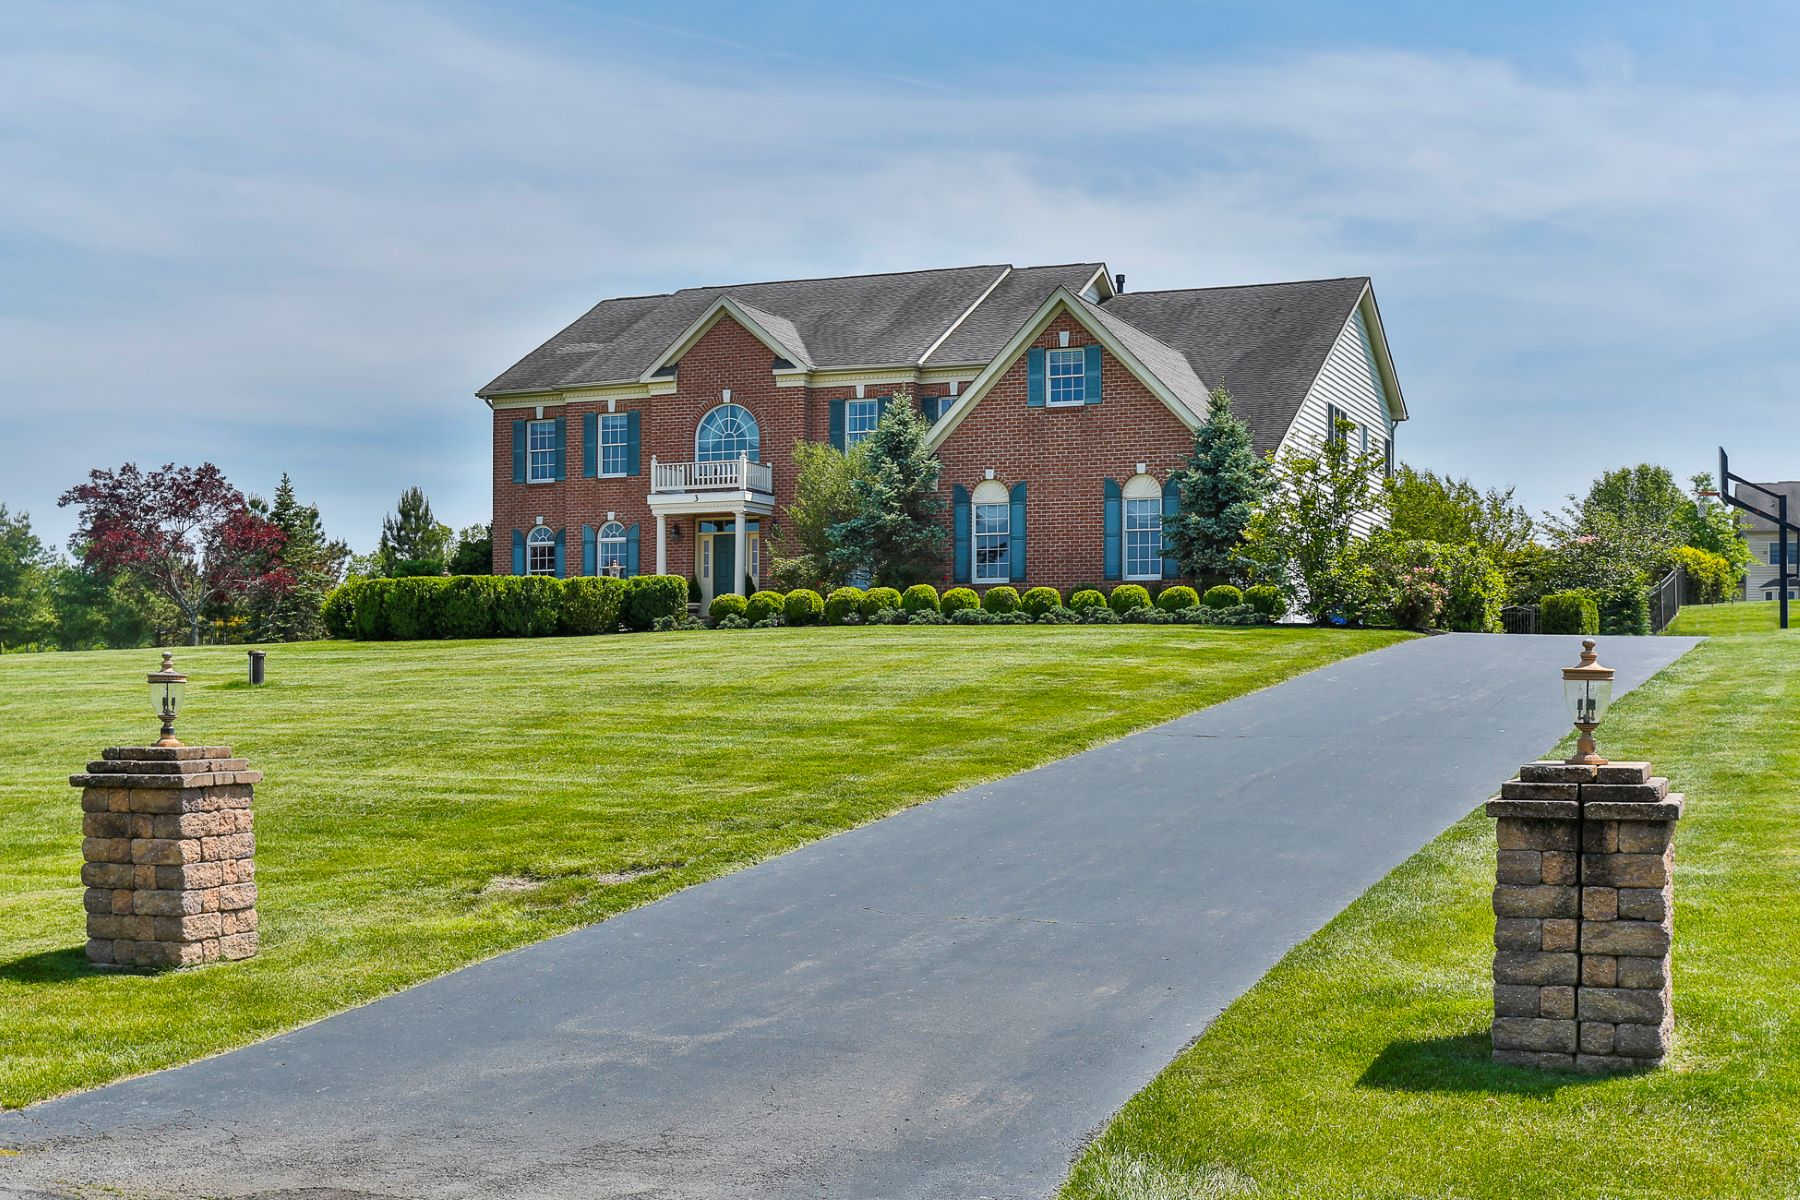 Single Family Home for Sale at Live Life Inspired - Hopewell Township 3 Baker Way Pennington, 08534 United States